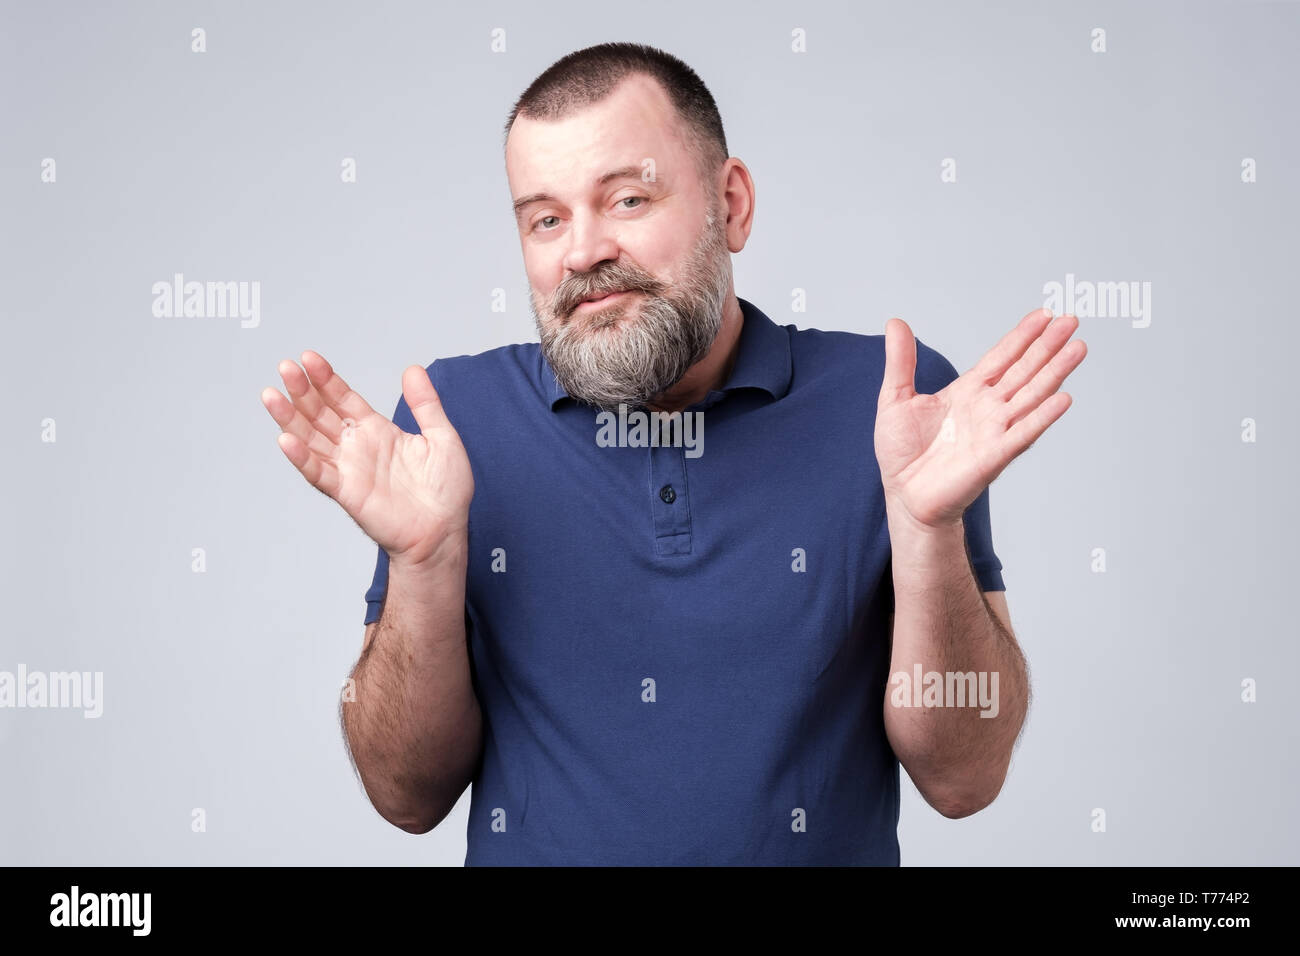 Bearded man in blue t-shirt shrugging shoulders - Stock Image